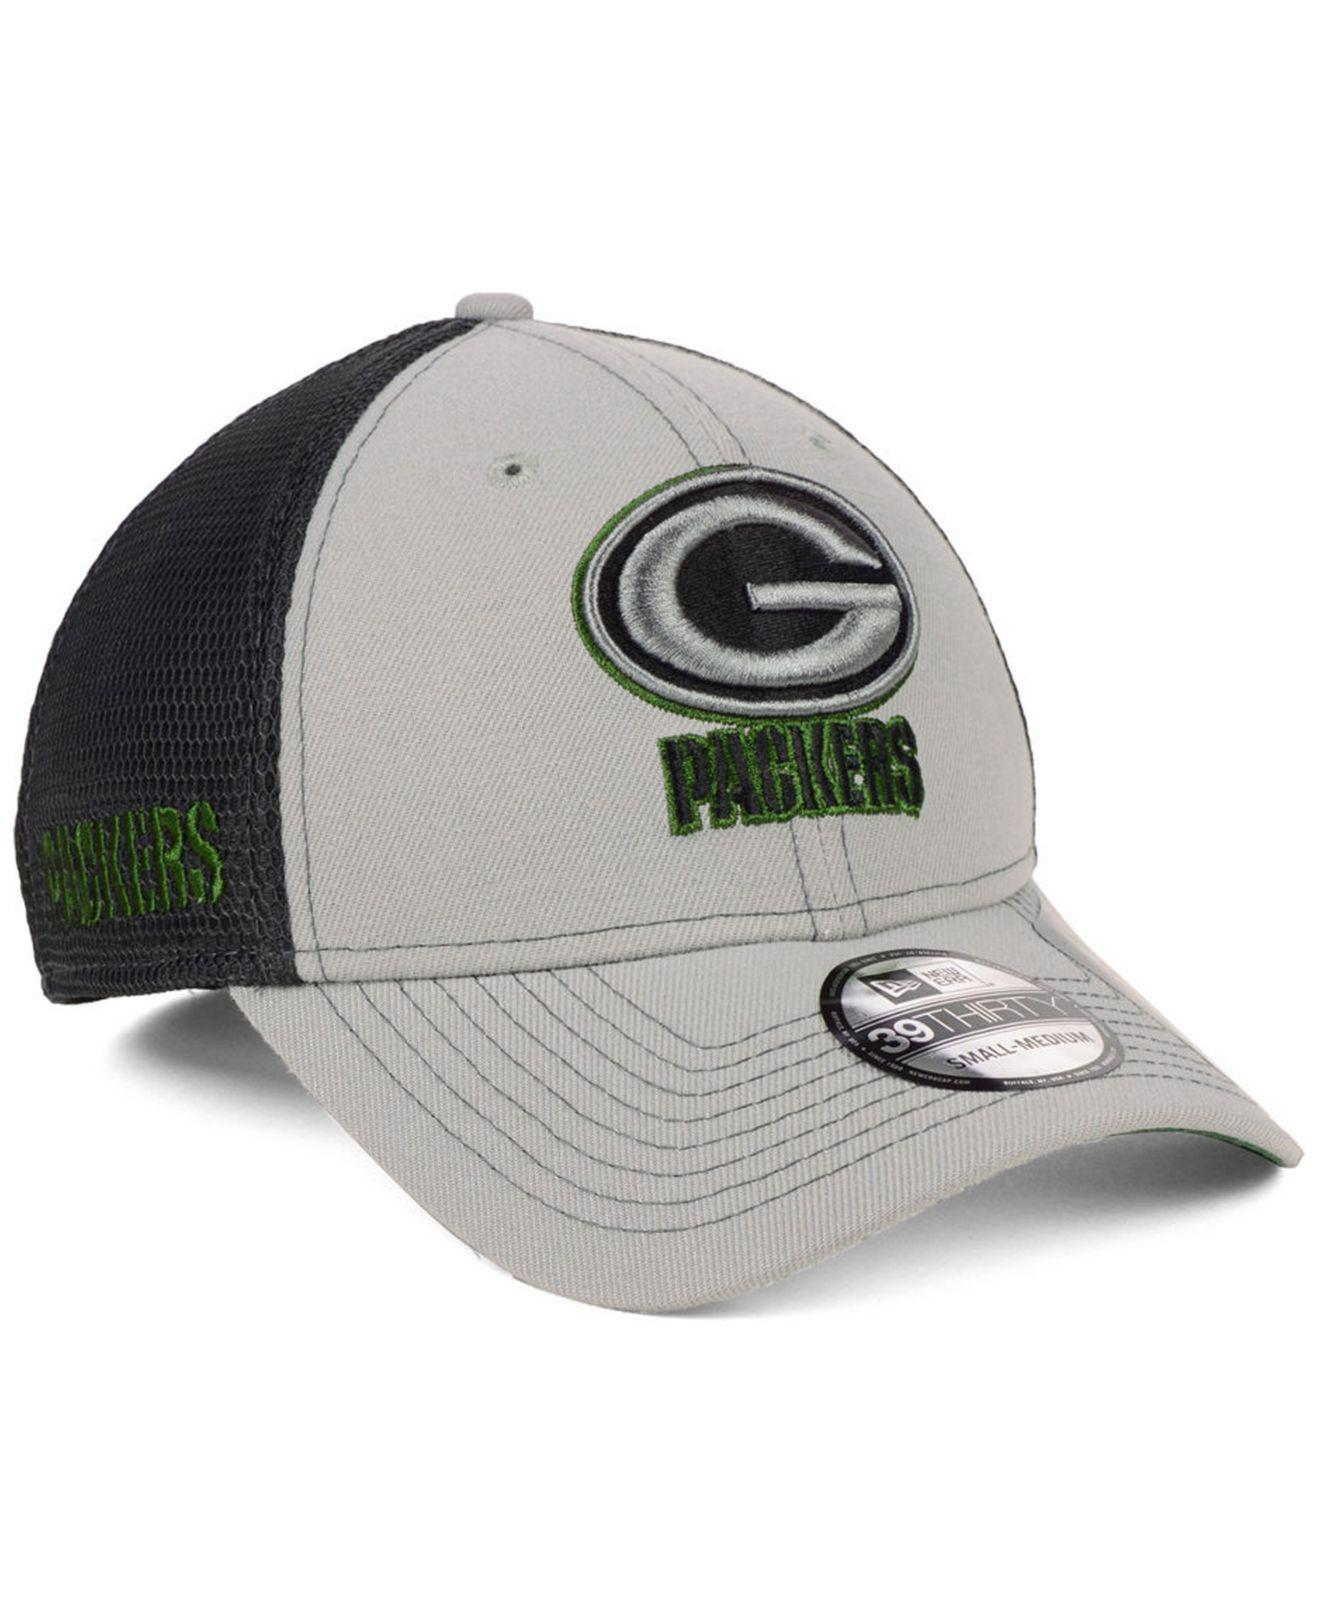 Lyst - Ktz Green Bay Packers 2-tone Sided 39thirty Cap in Green for Men e6250afc7